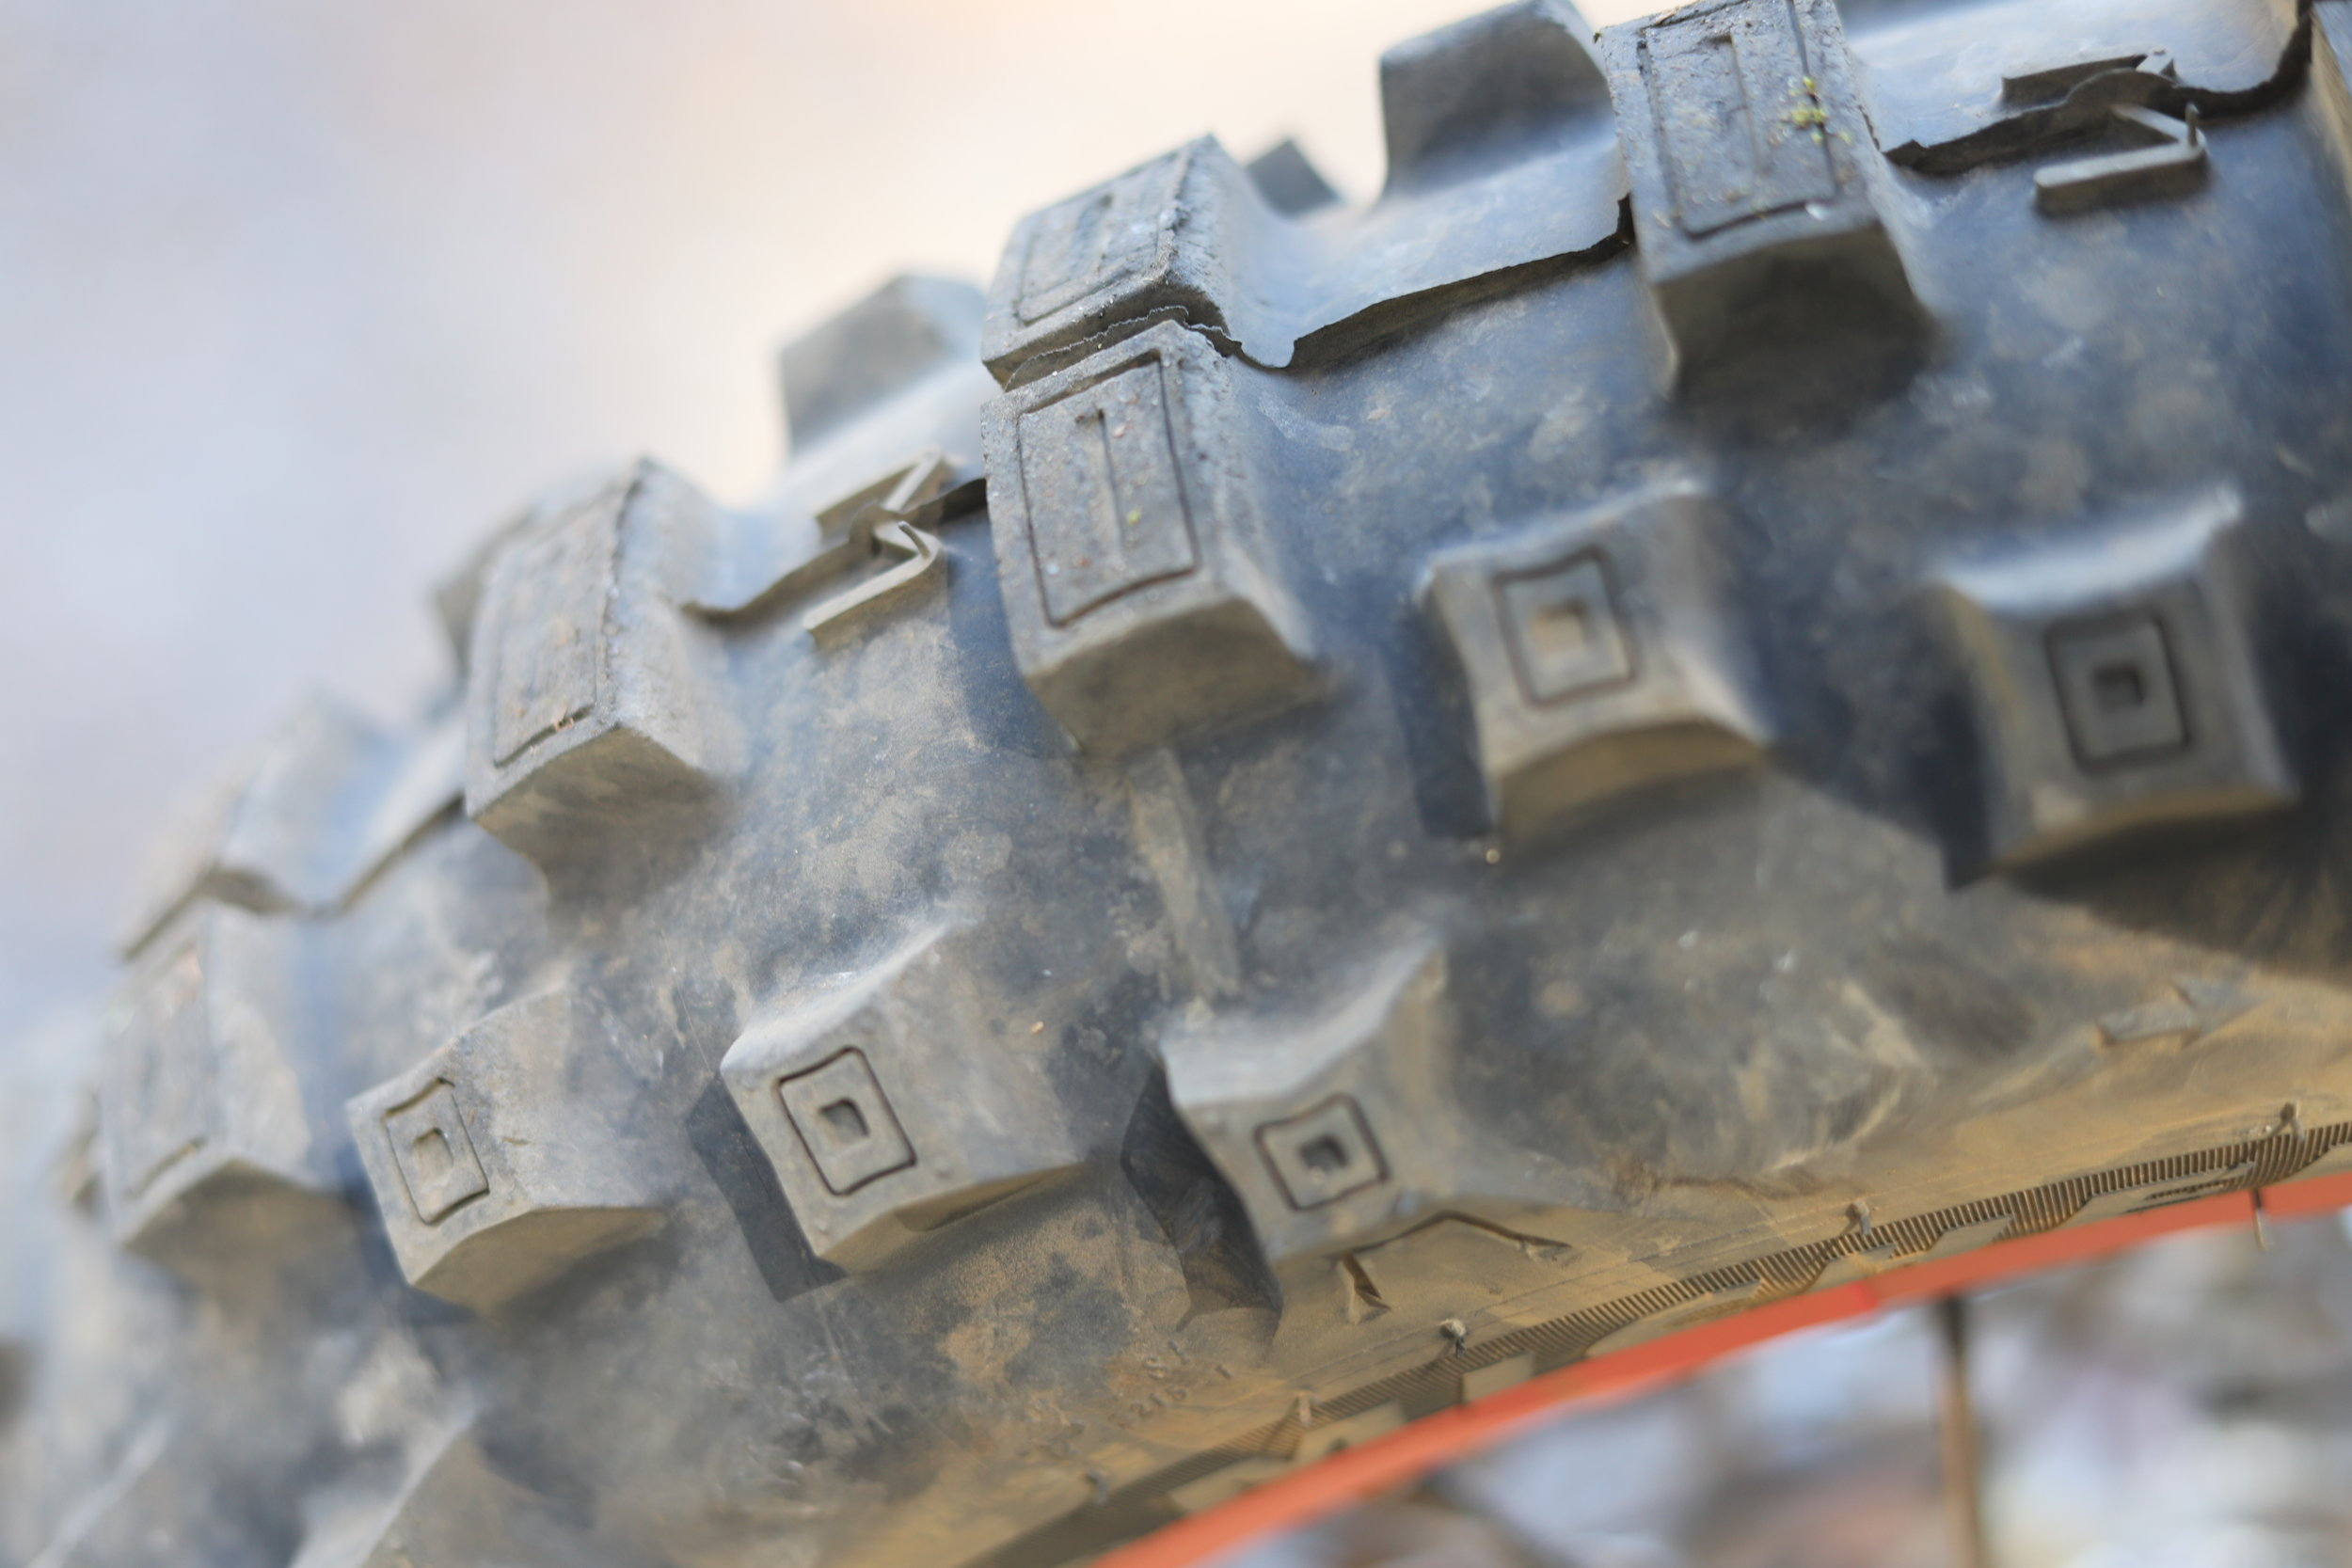 Michelin Enduro tires come stock and held up much better than expected in the first 100 miles.